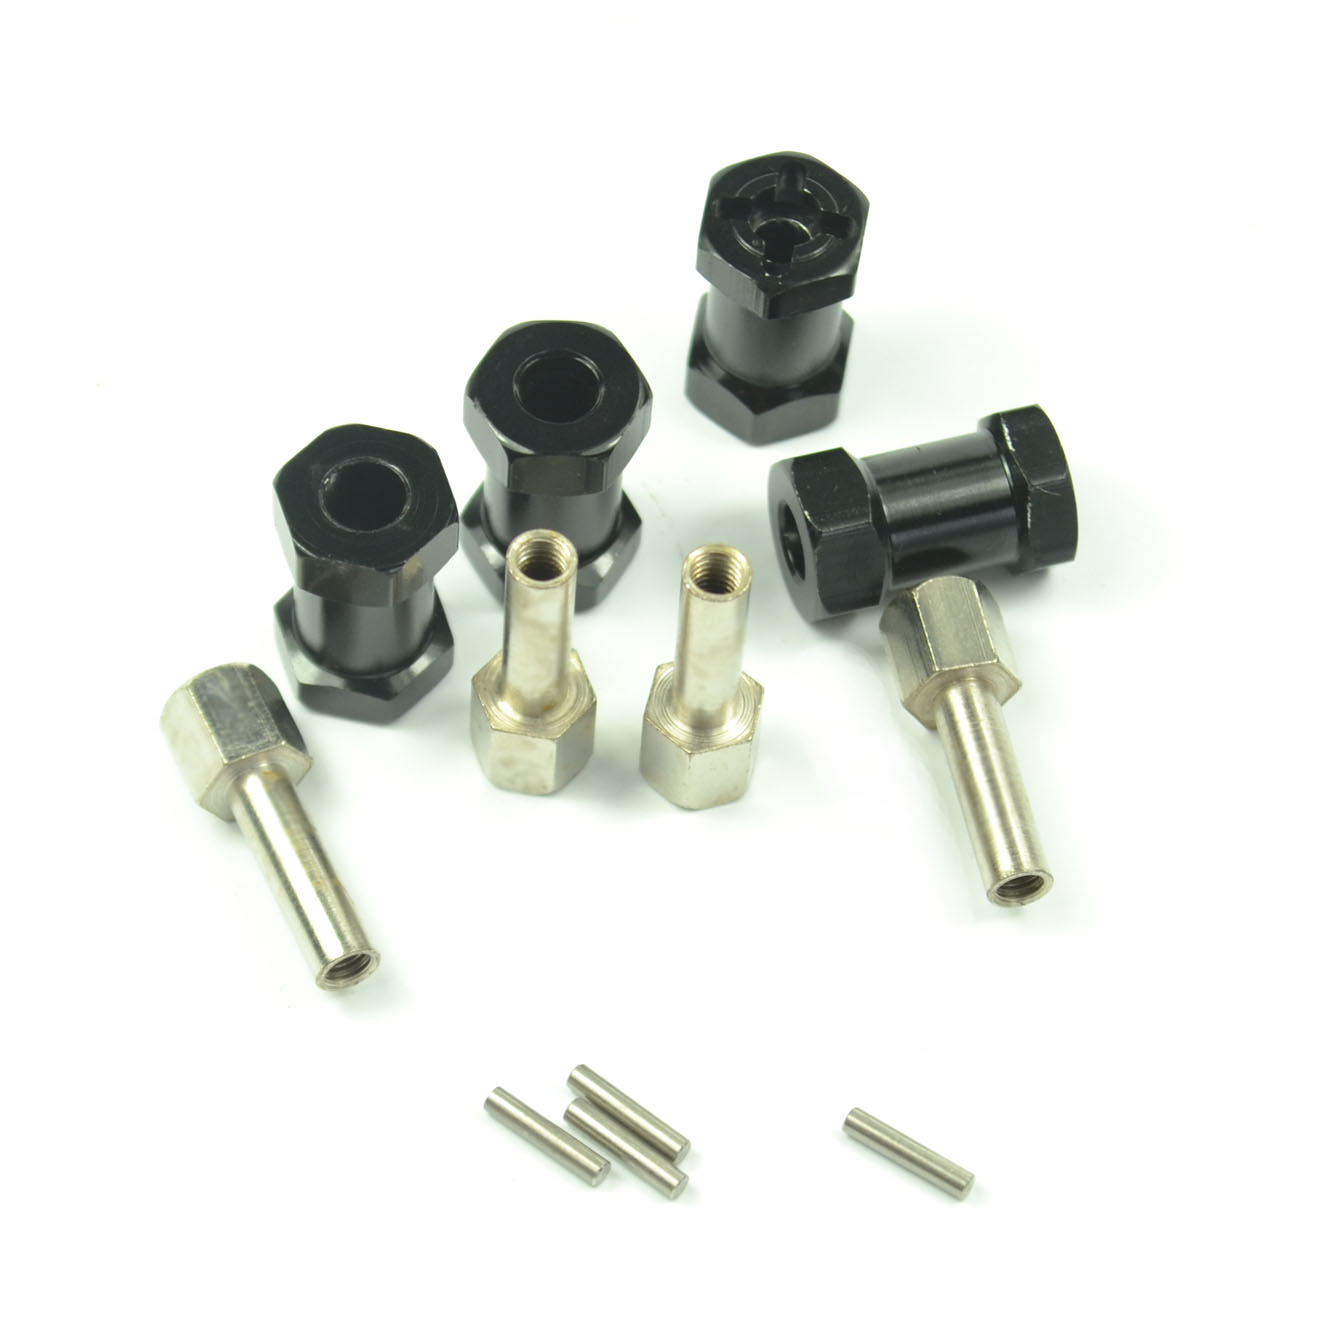 4PCS 1/10 RC Rock Crawler Upgrade Length Aluminium 20MM Extension Adapter Alloy Hub HEX 12MM SCX10 RC4WD D90